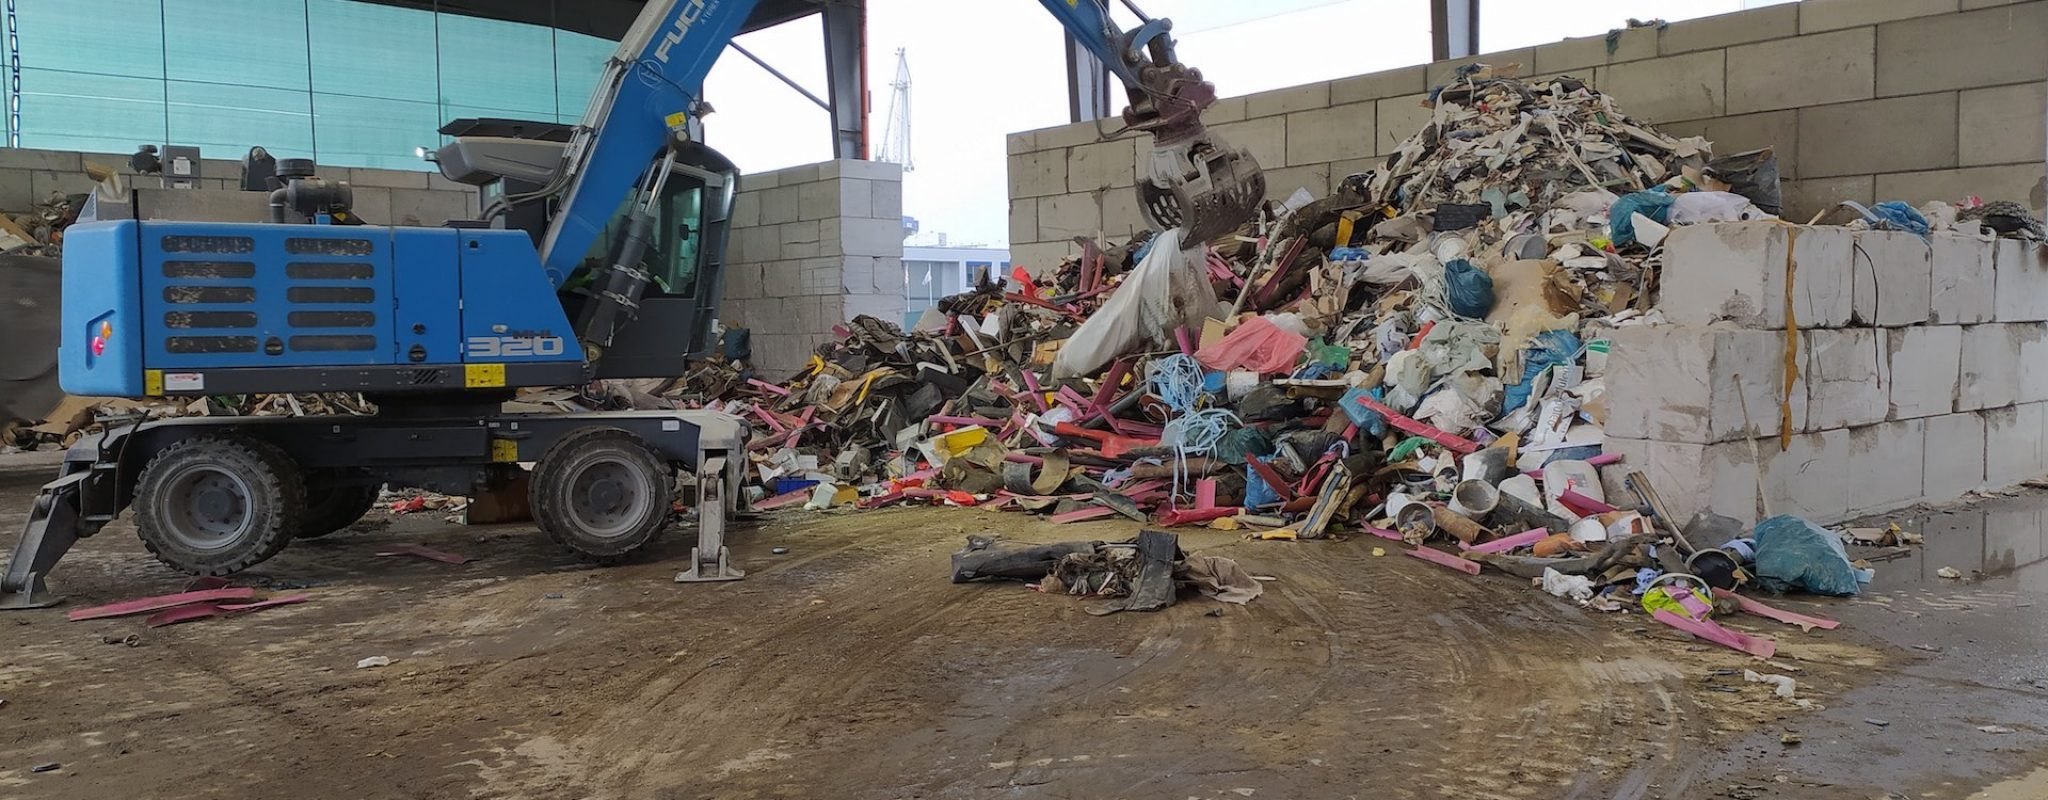 SmartRecycling - Pretreatment of waste